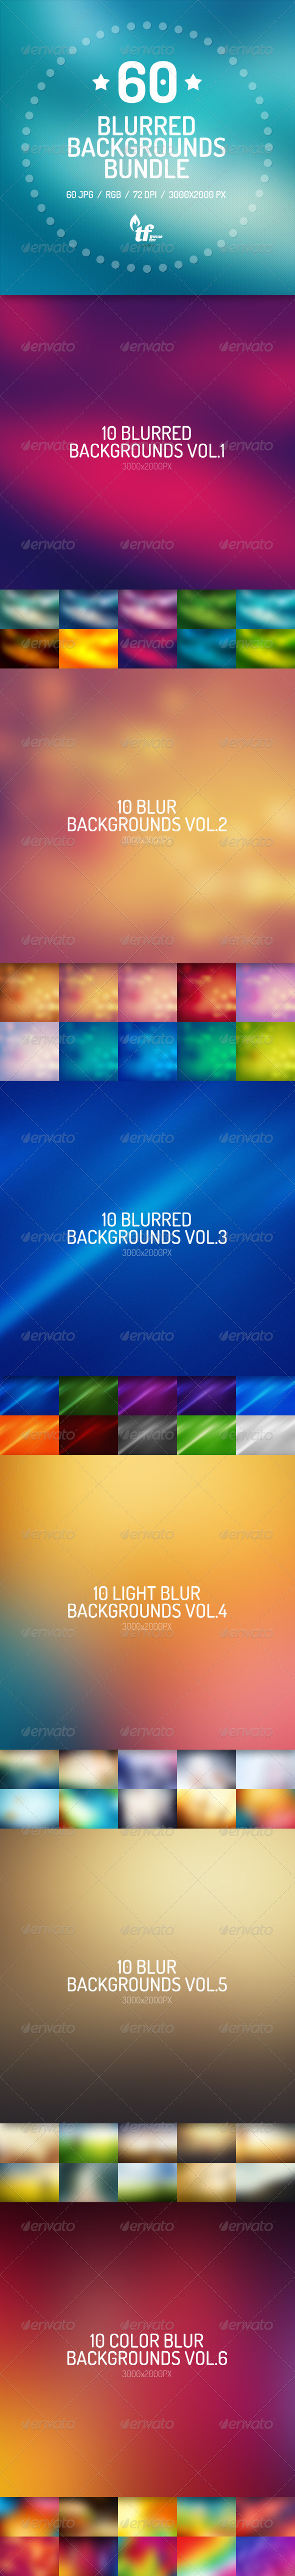 GraphicRiver 60 Blurred Backgrounds Bundle 7462582